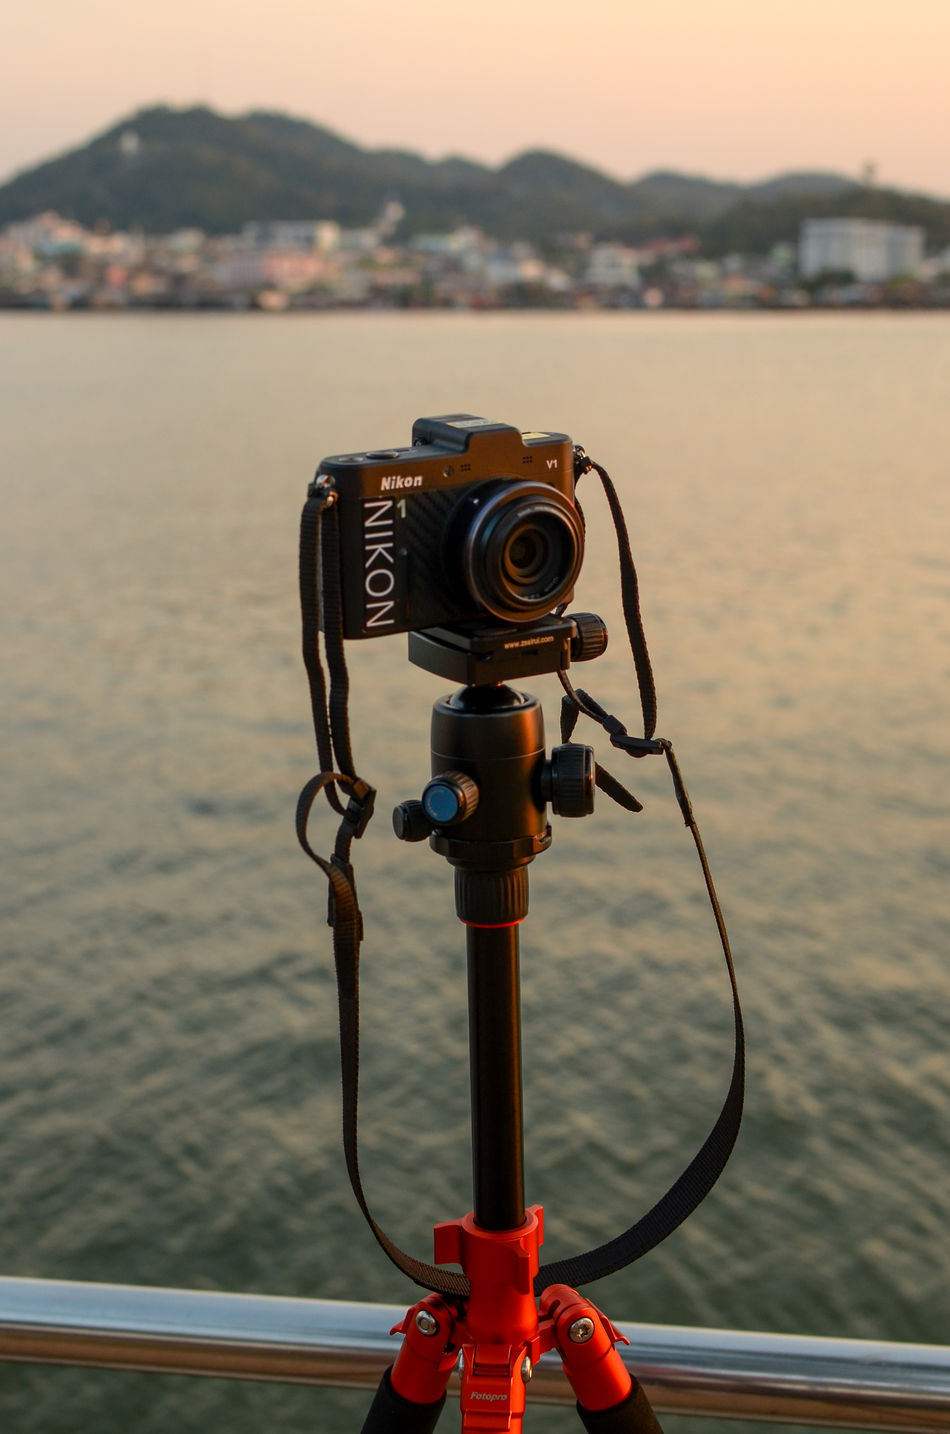 Digial camera on tripod with blured background (Nikon 1 V1 camera) Blurred Background Camera - Photographic Equipment Dusk Equipment Hobbies Memories Mountain Nikon Nikon 1  Nikon 1 V1 Nikon V1 Outdoors Photography Photography Themes Scenics Sea Sky Sunset Tourism Tourist Travel Travel Tri Pod View Water